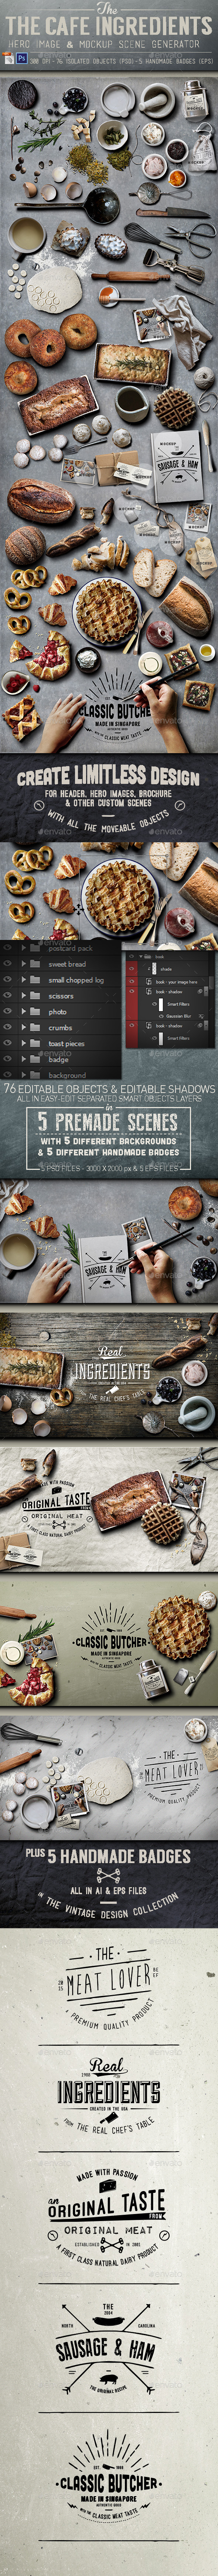 Cafe Ingredients Hero Image - Hero Images Graphics